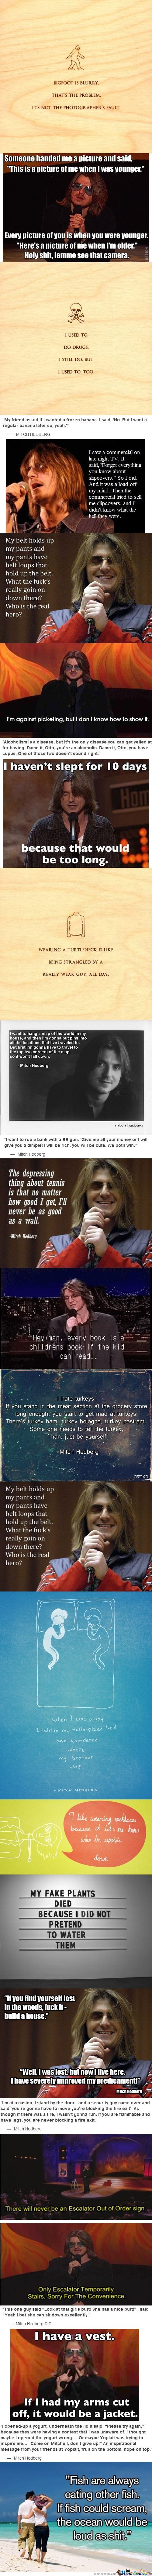 Mitch Hedberg Comp Mitch Hedberg Funny Pictures Humor